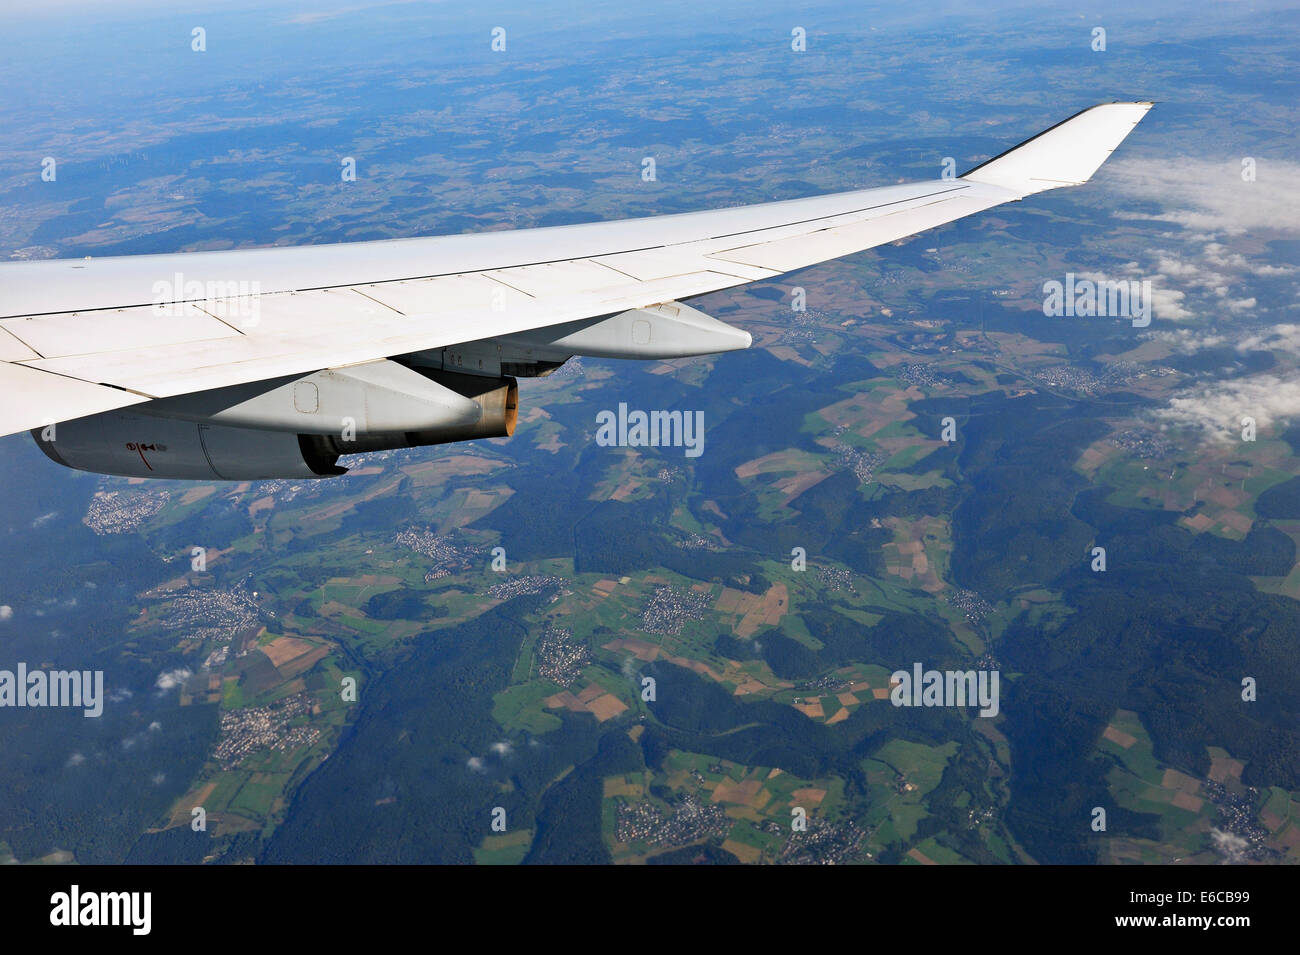 Wing of flying airplane over Germany, Europe - with tiny German villages below - Stock Image